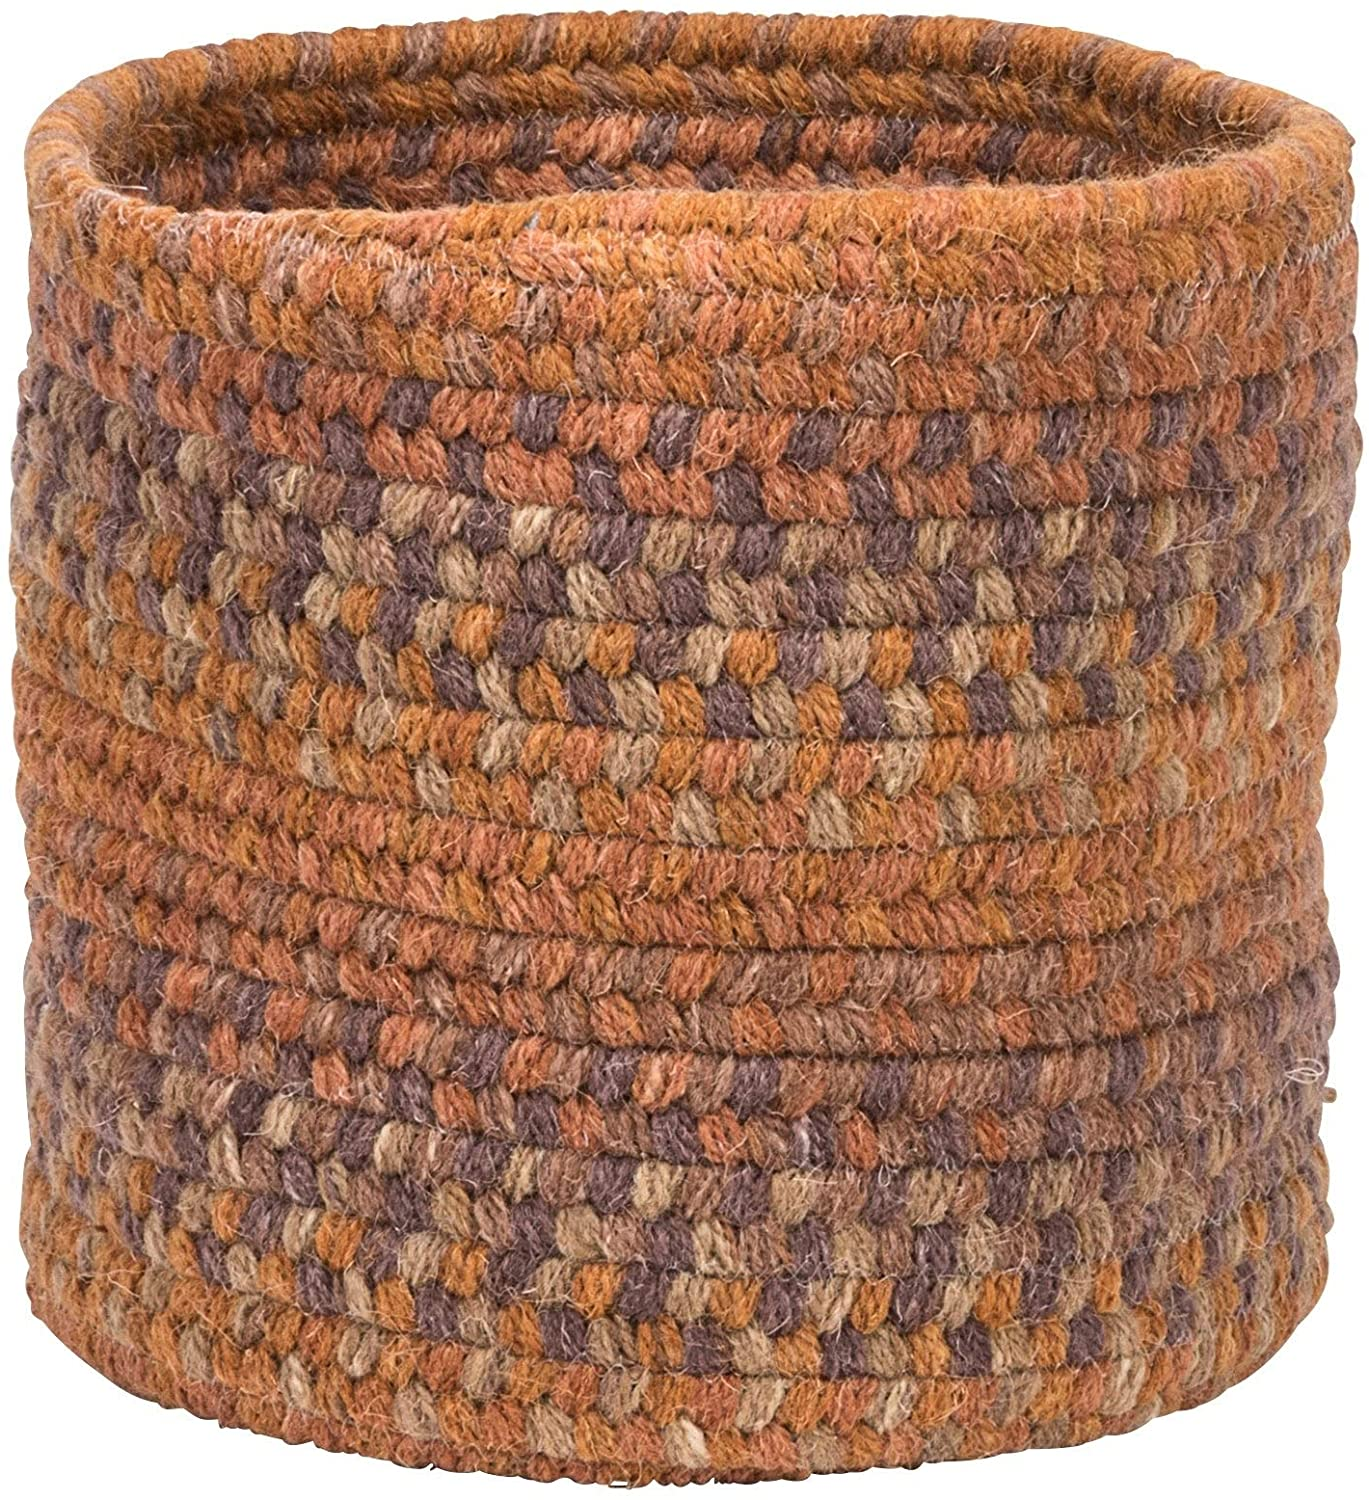 "MISC Small Space Wool Basket Fall Oak 10""x10""x8"" Orange"